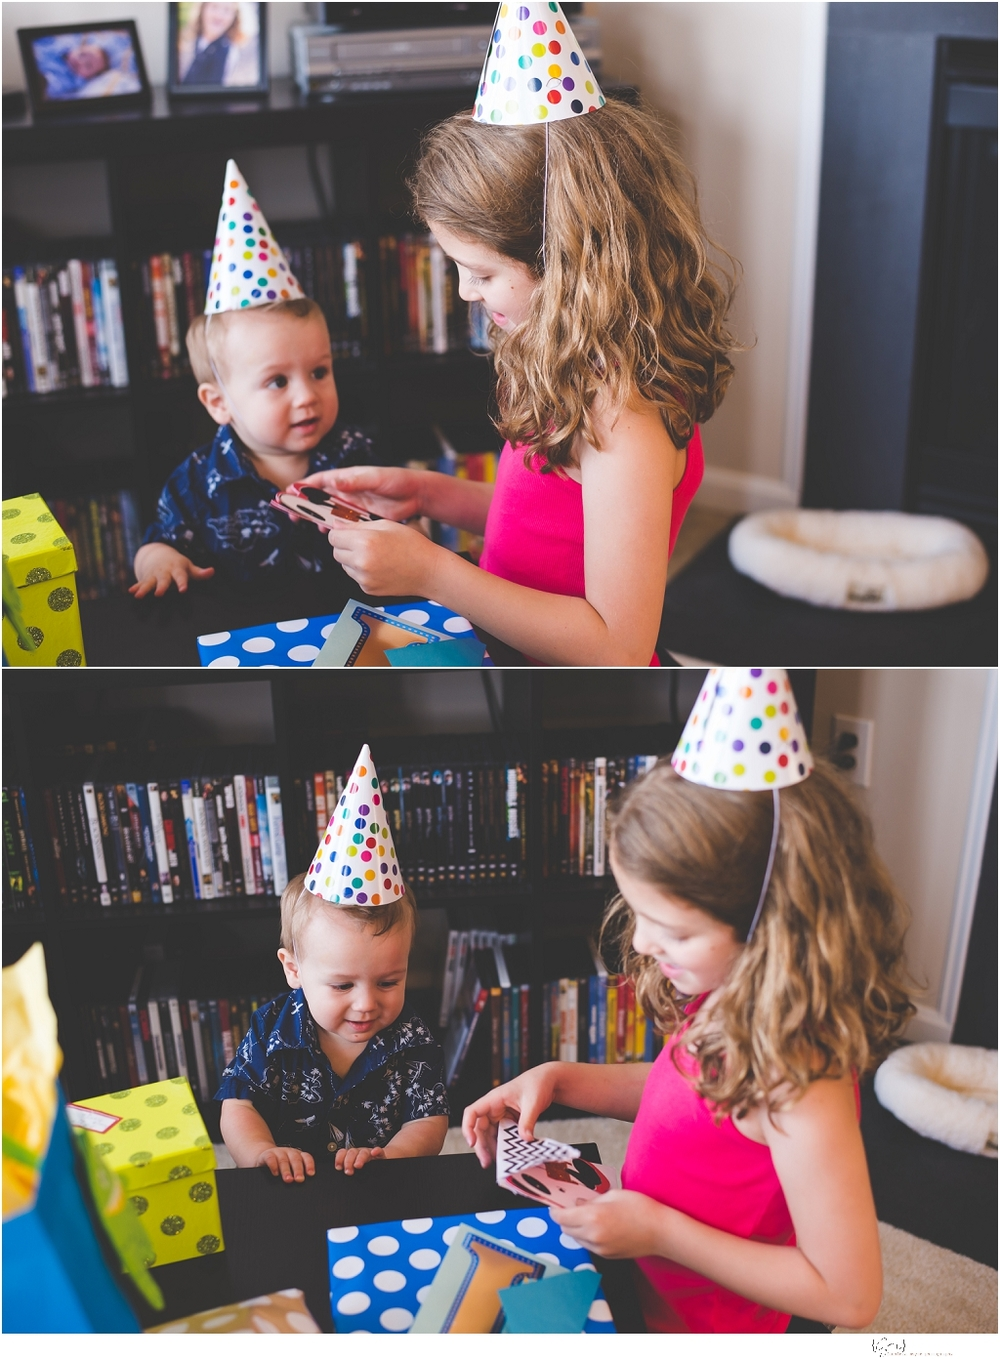 jannicka mayte photography-first birthday party-northern virginia lifestyle photographer_0005.jpg